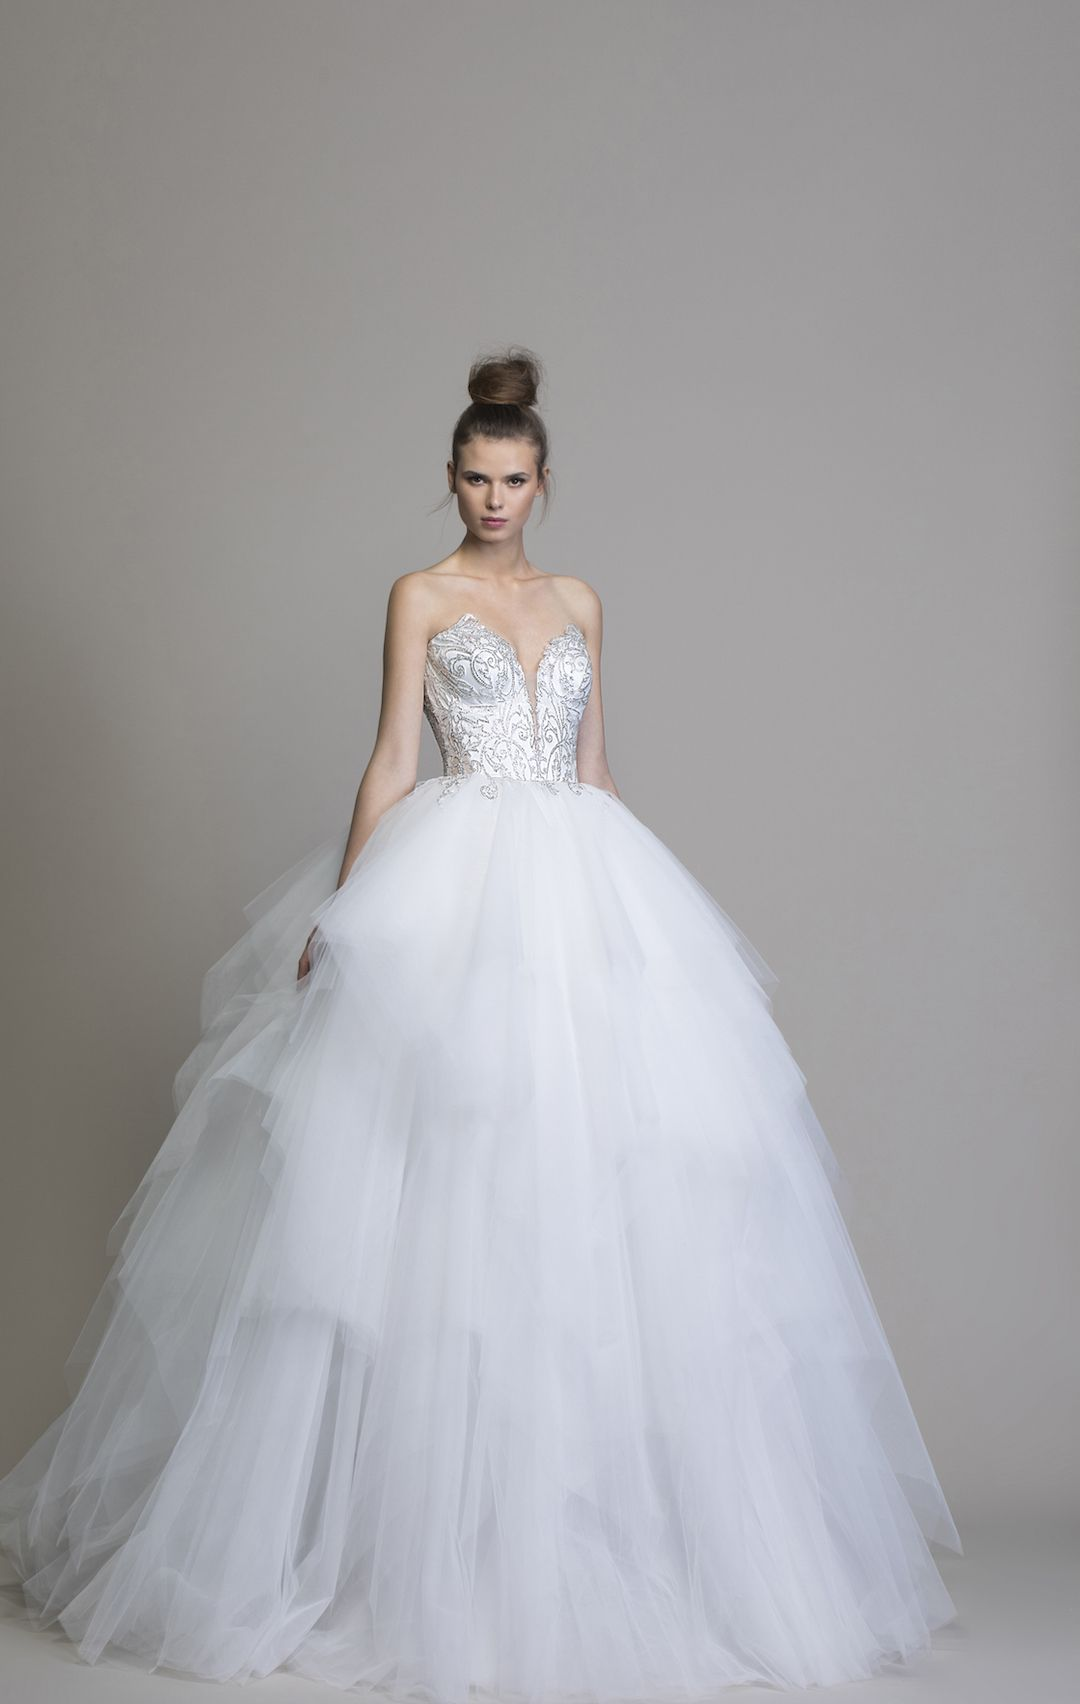 Brand New Love By Pnina Tornai Ball Gown Wedding Dress Available At Kleinfeld Bridal Style 14757 Tu Pnina Tornai Wedding Dress Kleinfeld Bridal Ball Gowns